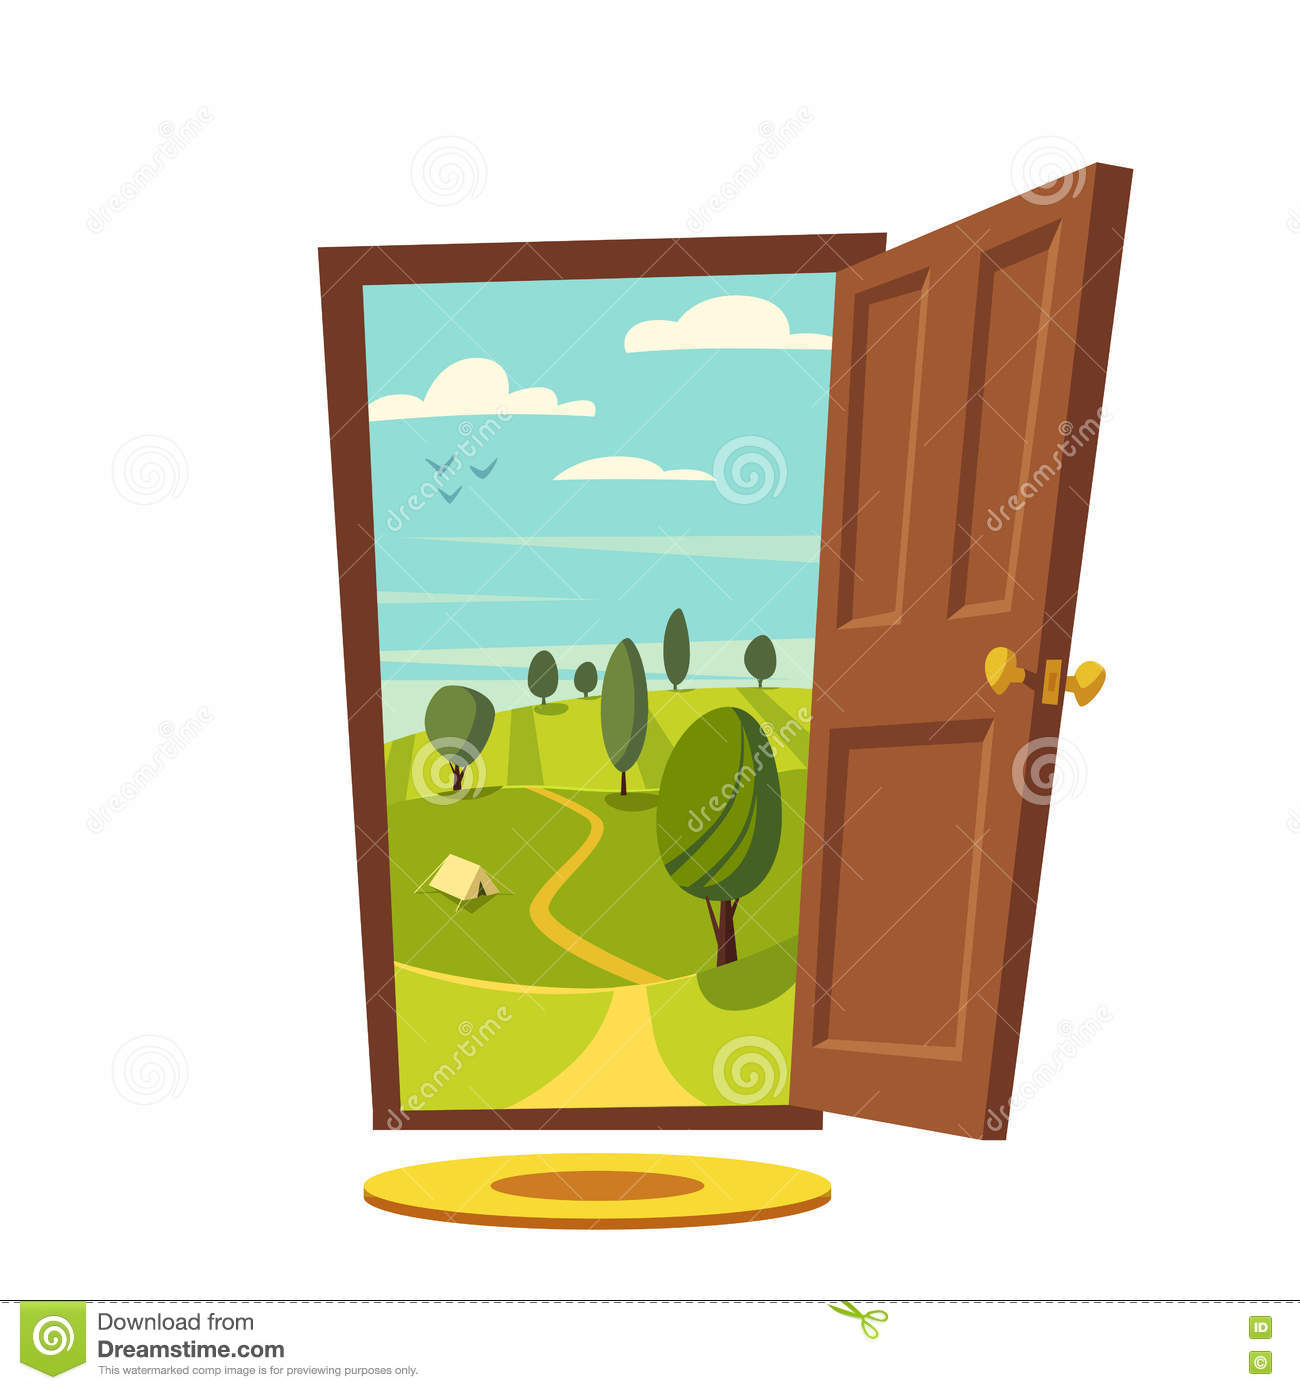 Open front door illustration for Porte ouverte